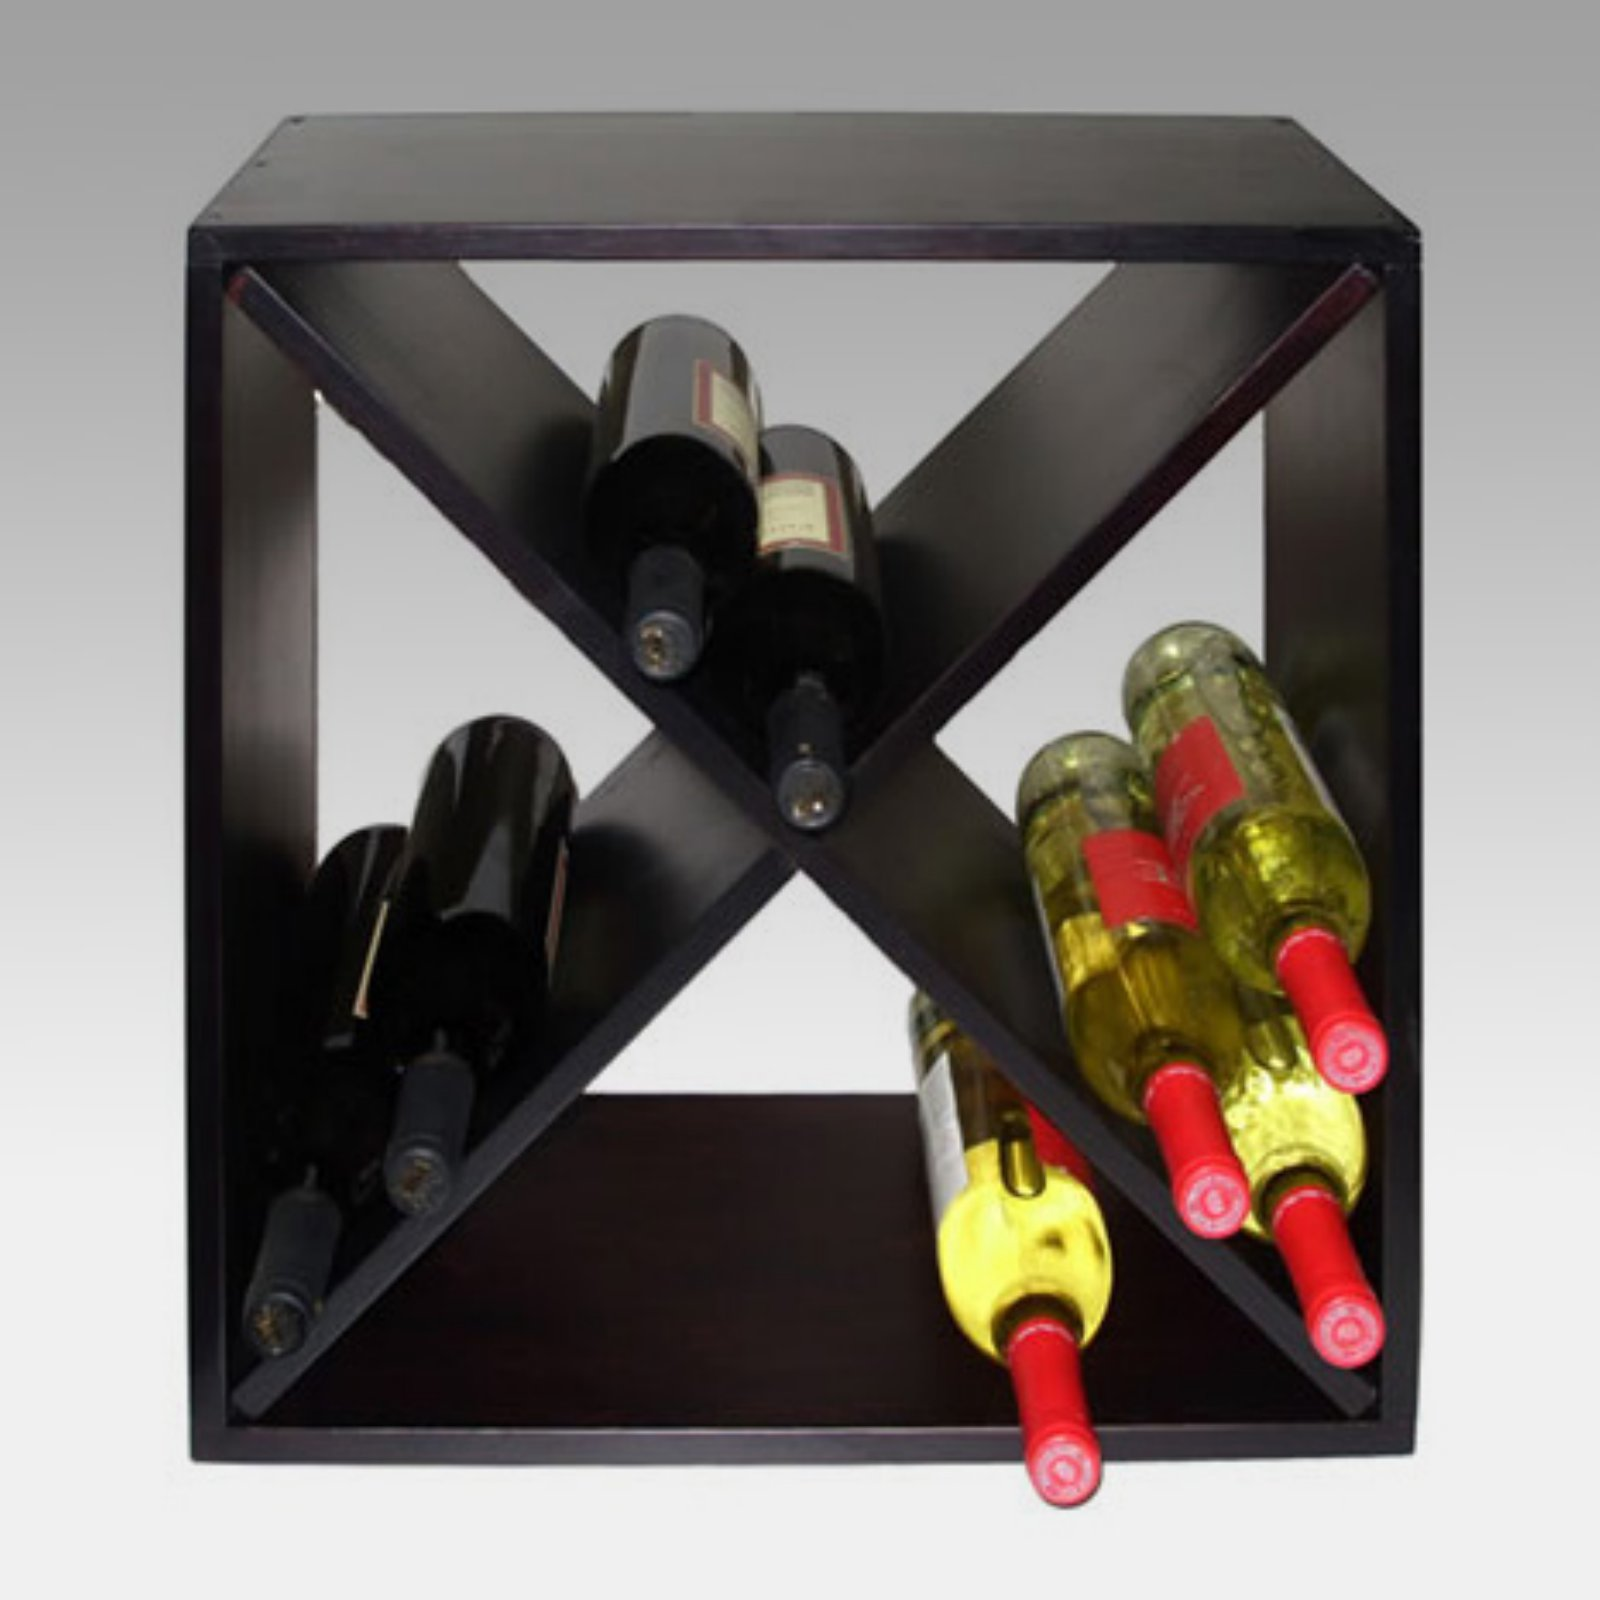 Vinotemp Diamond Bin 24-Bottle Wine Rack